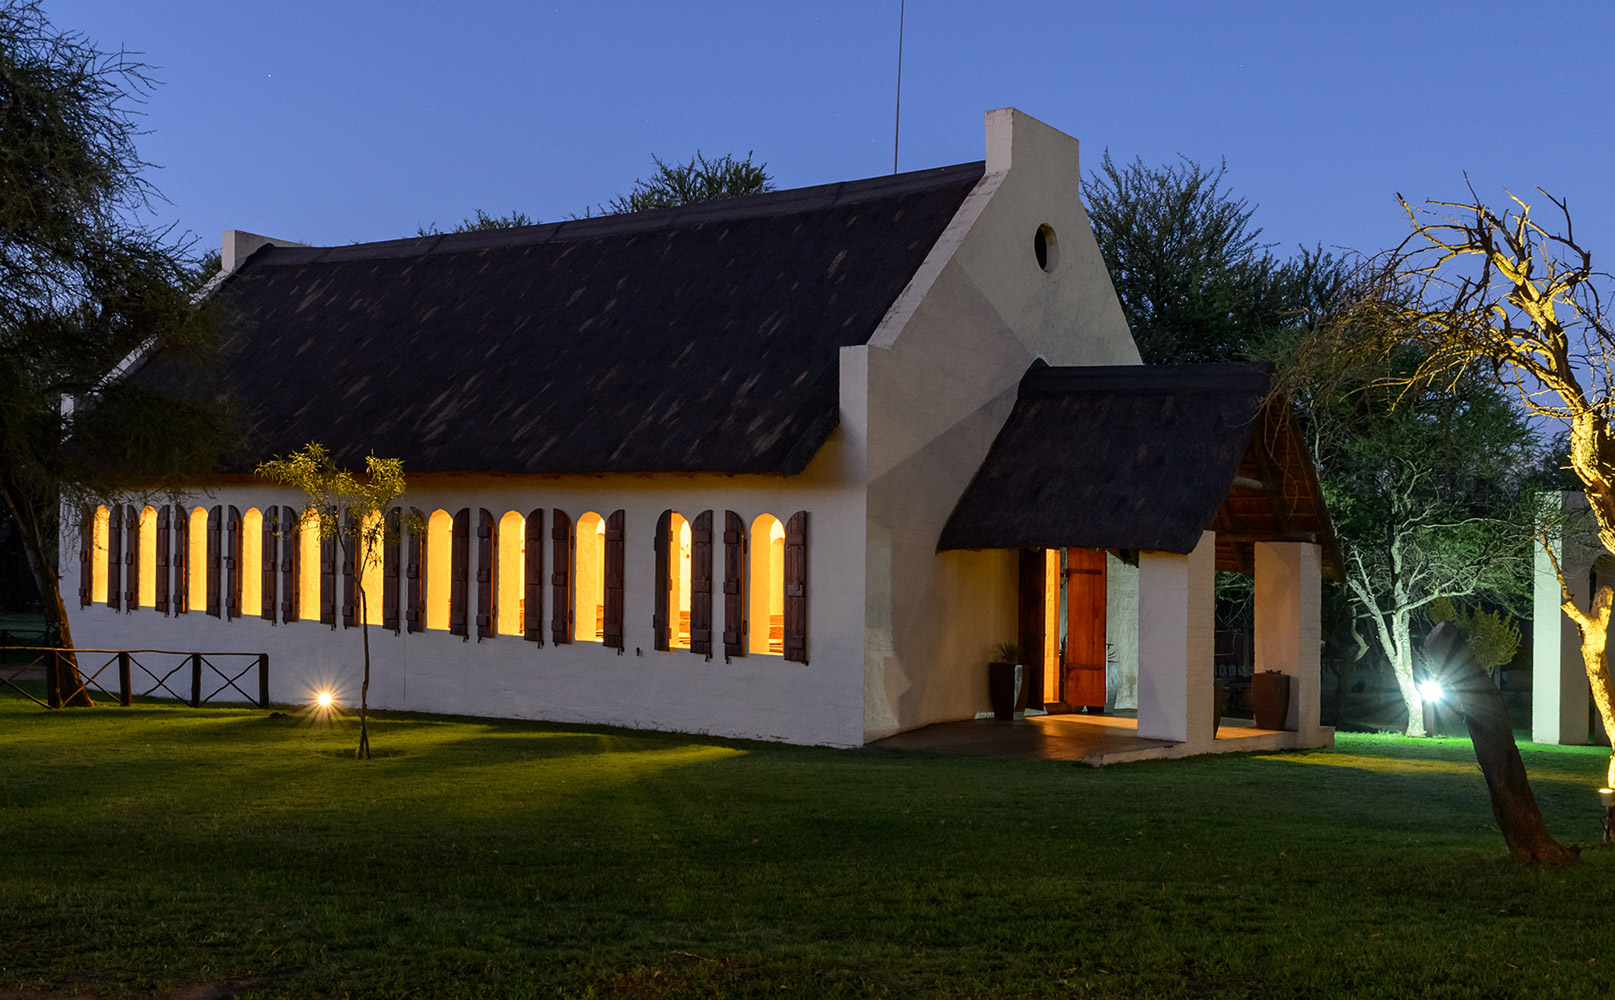 Wedding Venue near JHB